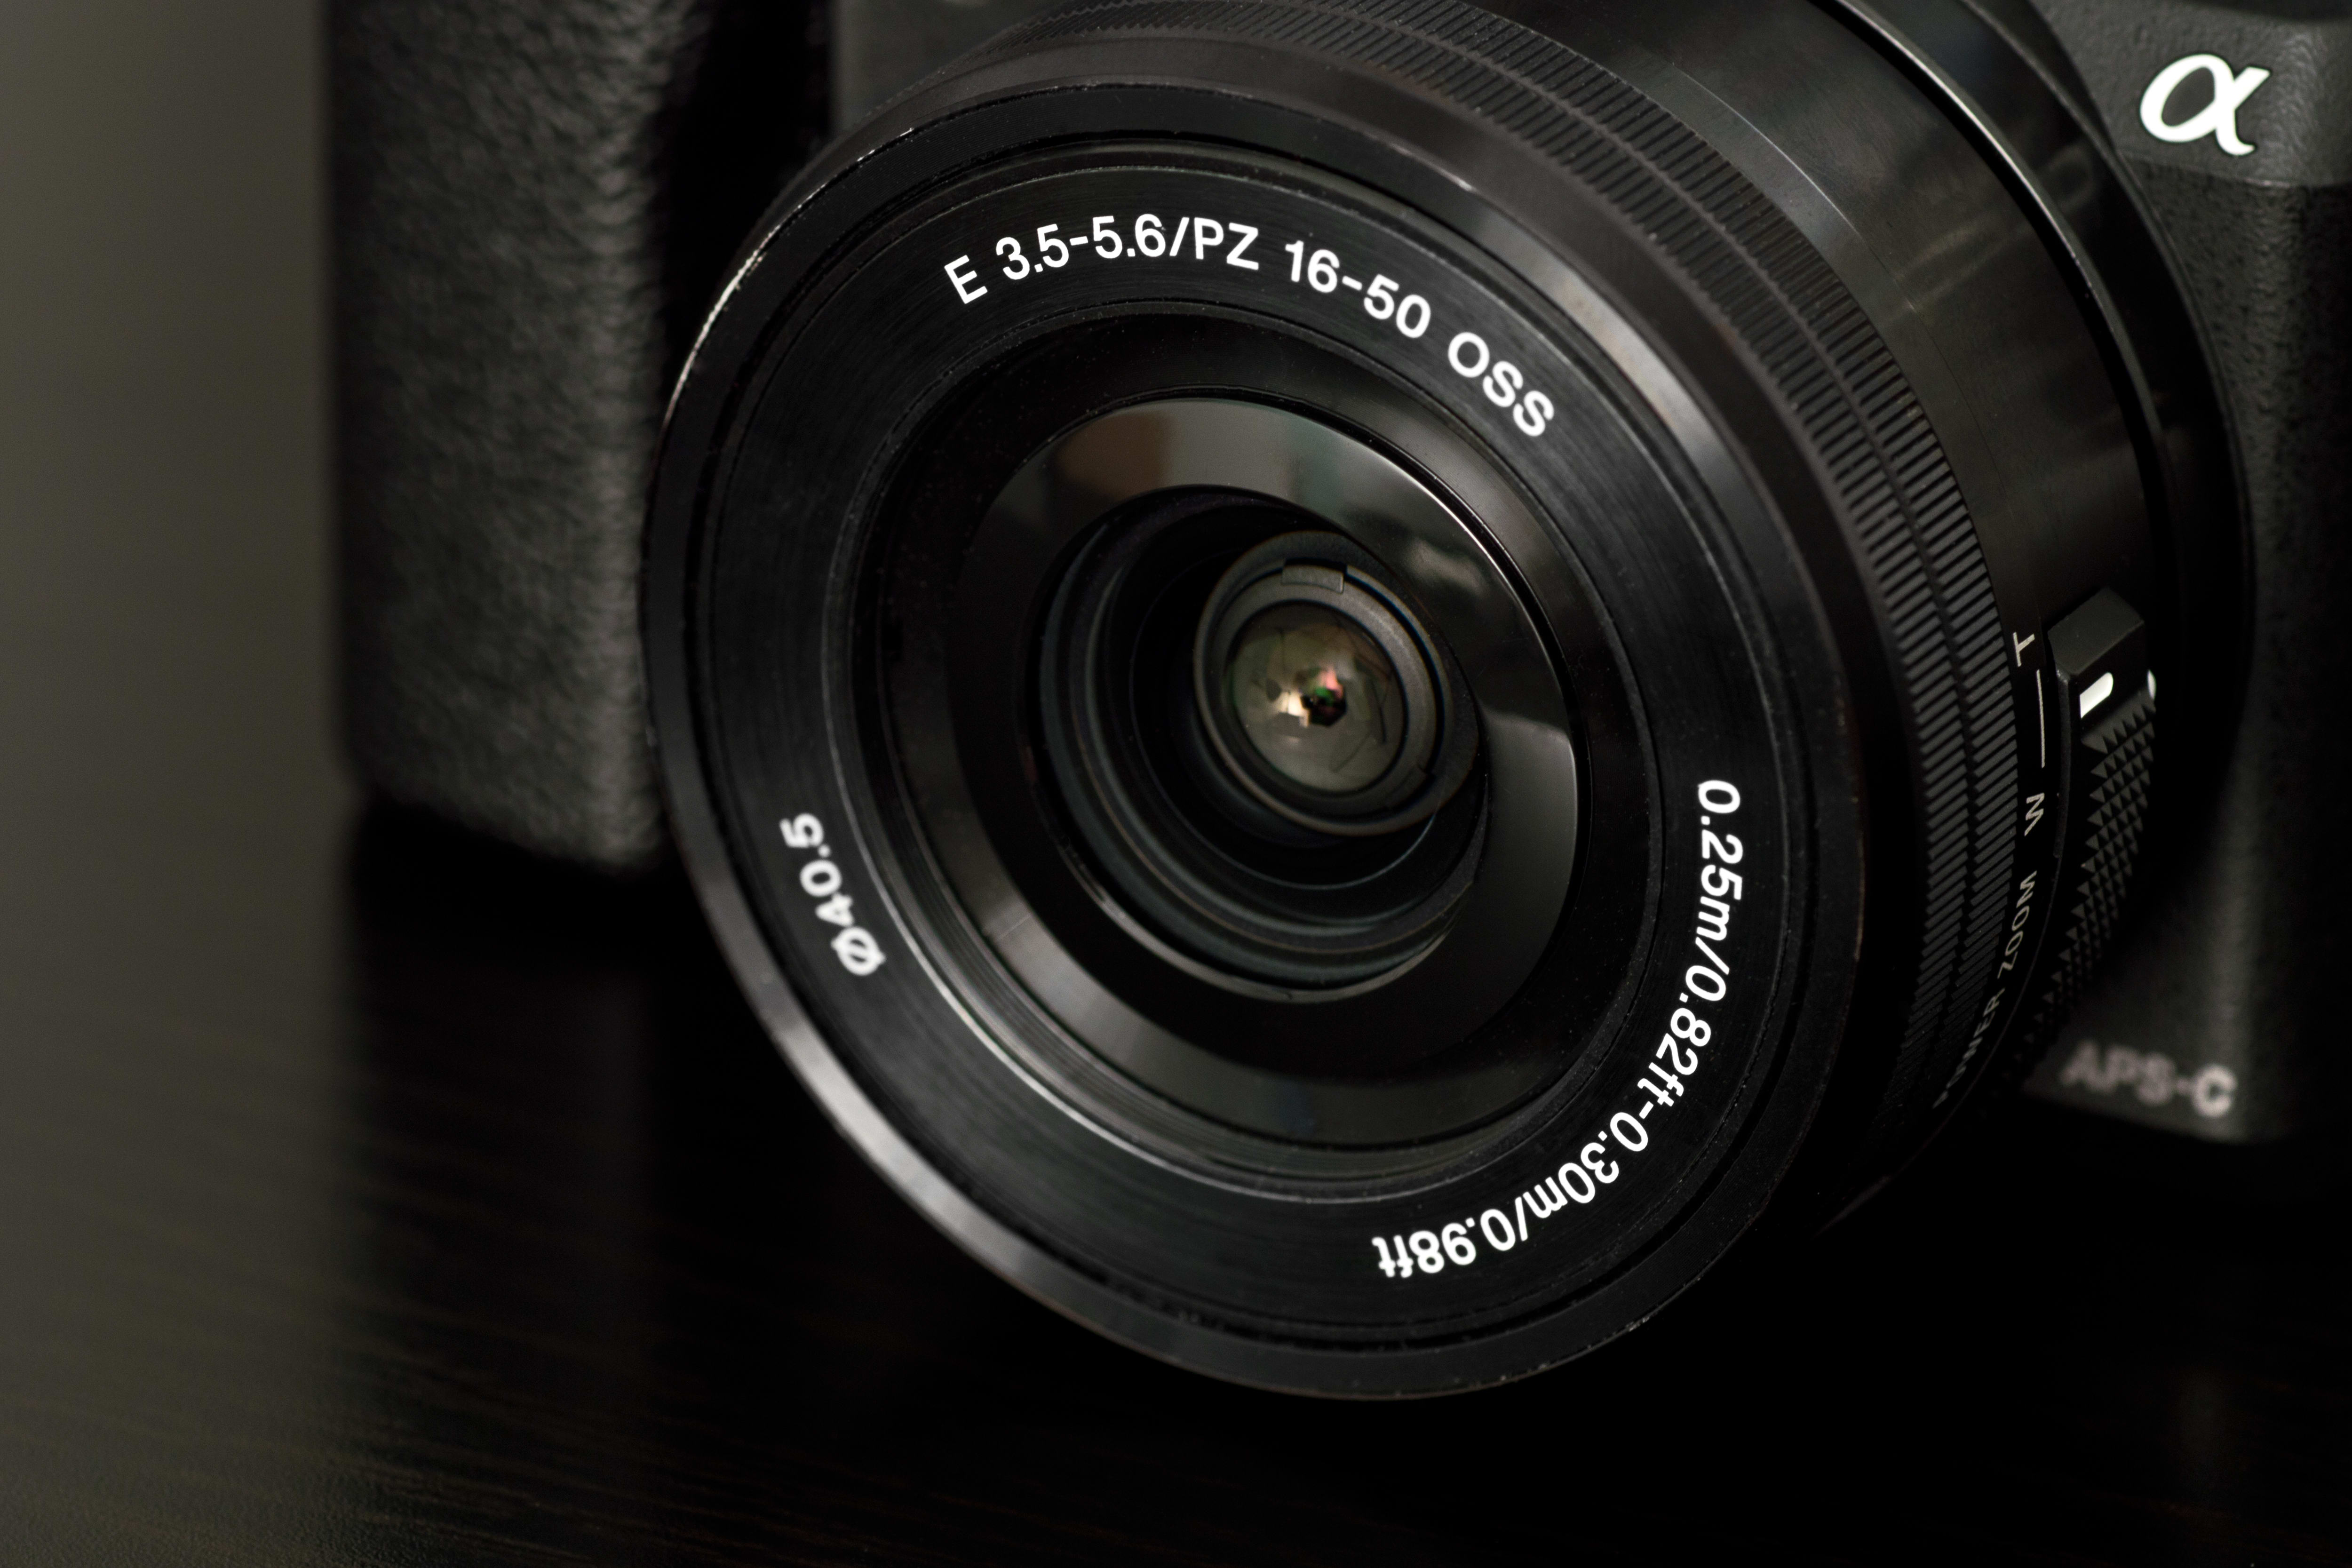 Shot of the 16-50mm f/3.5-5.6 lens on the Sony A5100.